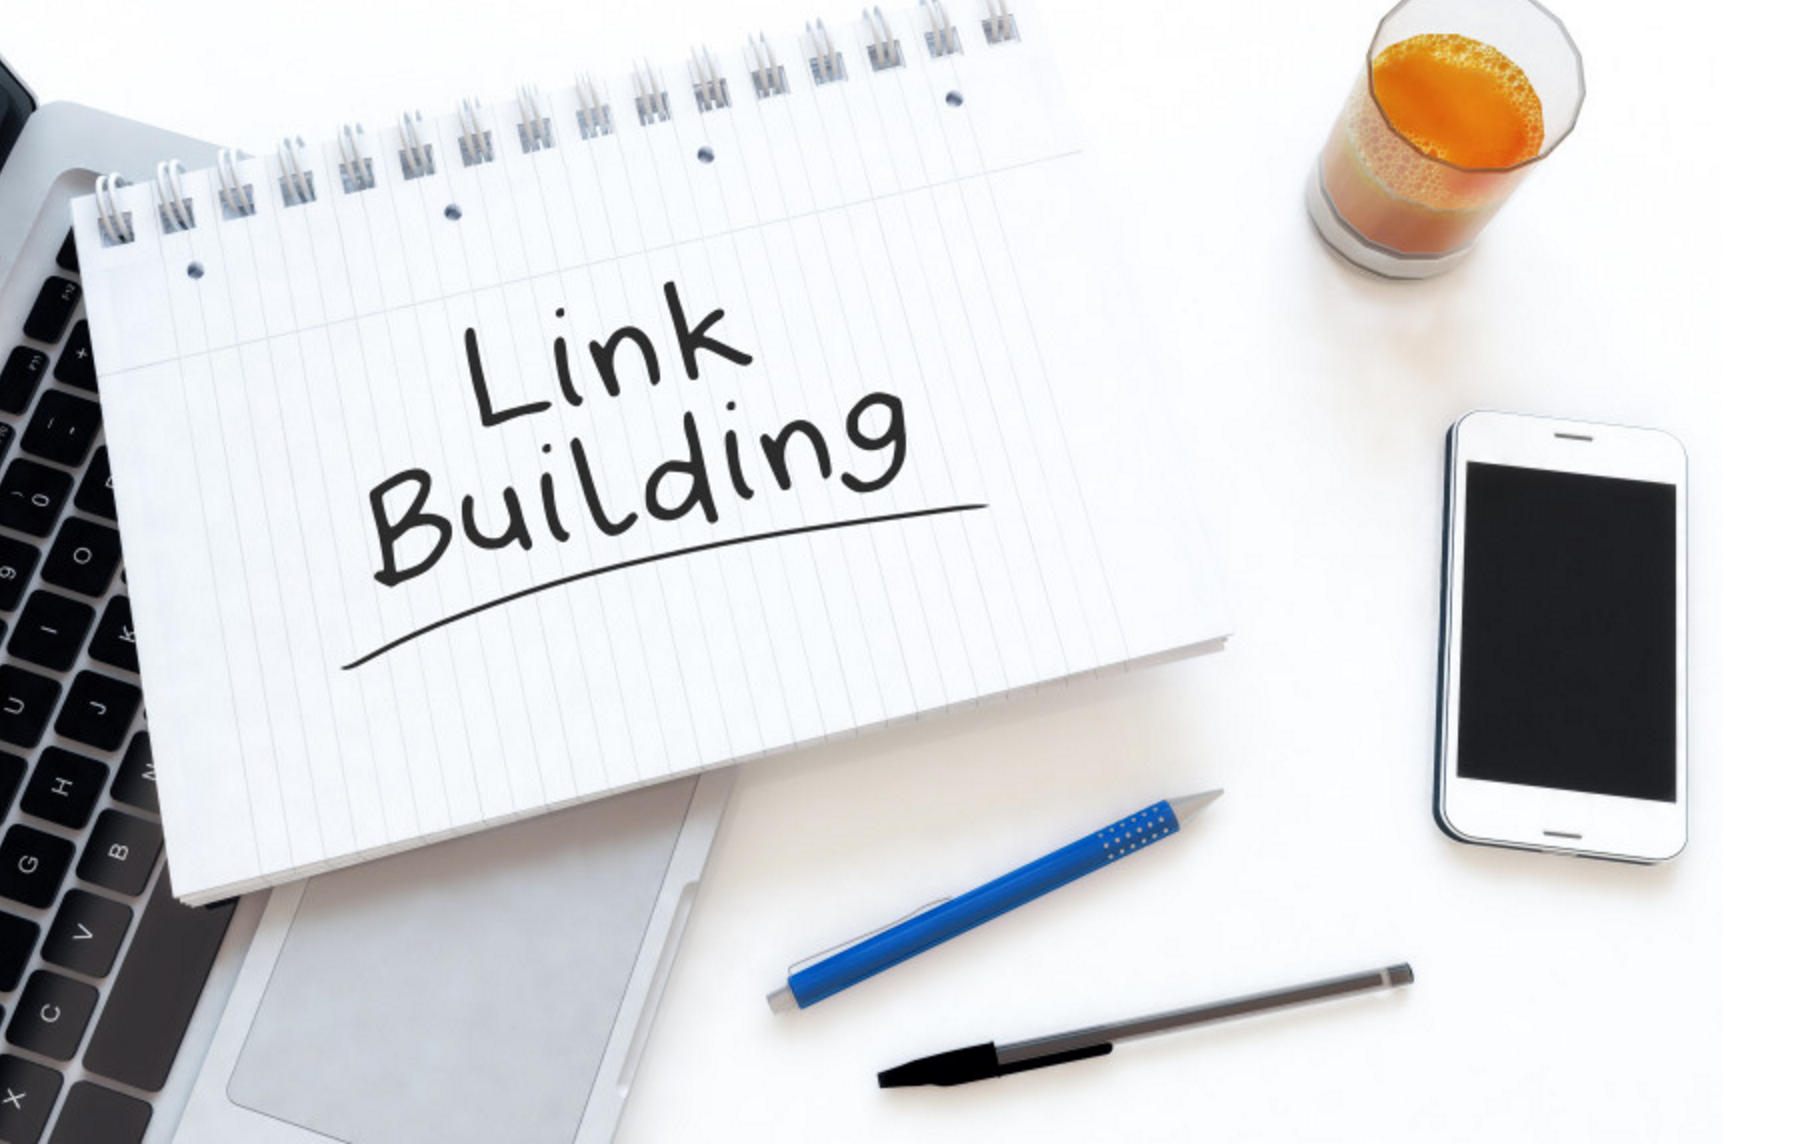 Backlink - Link Building